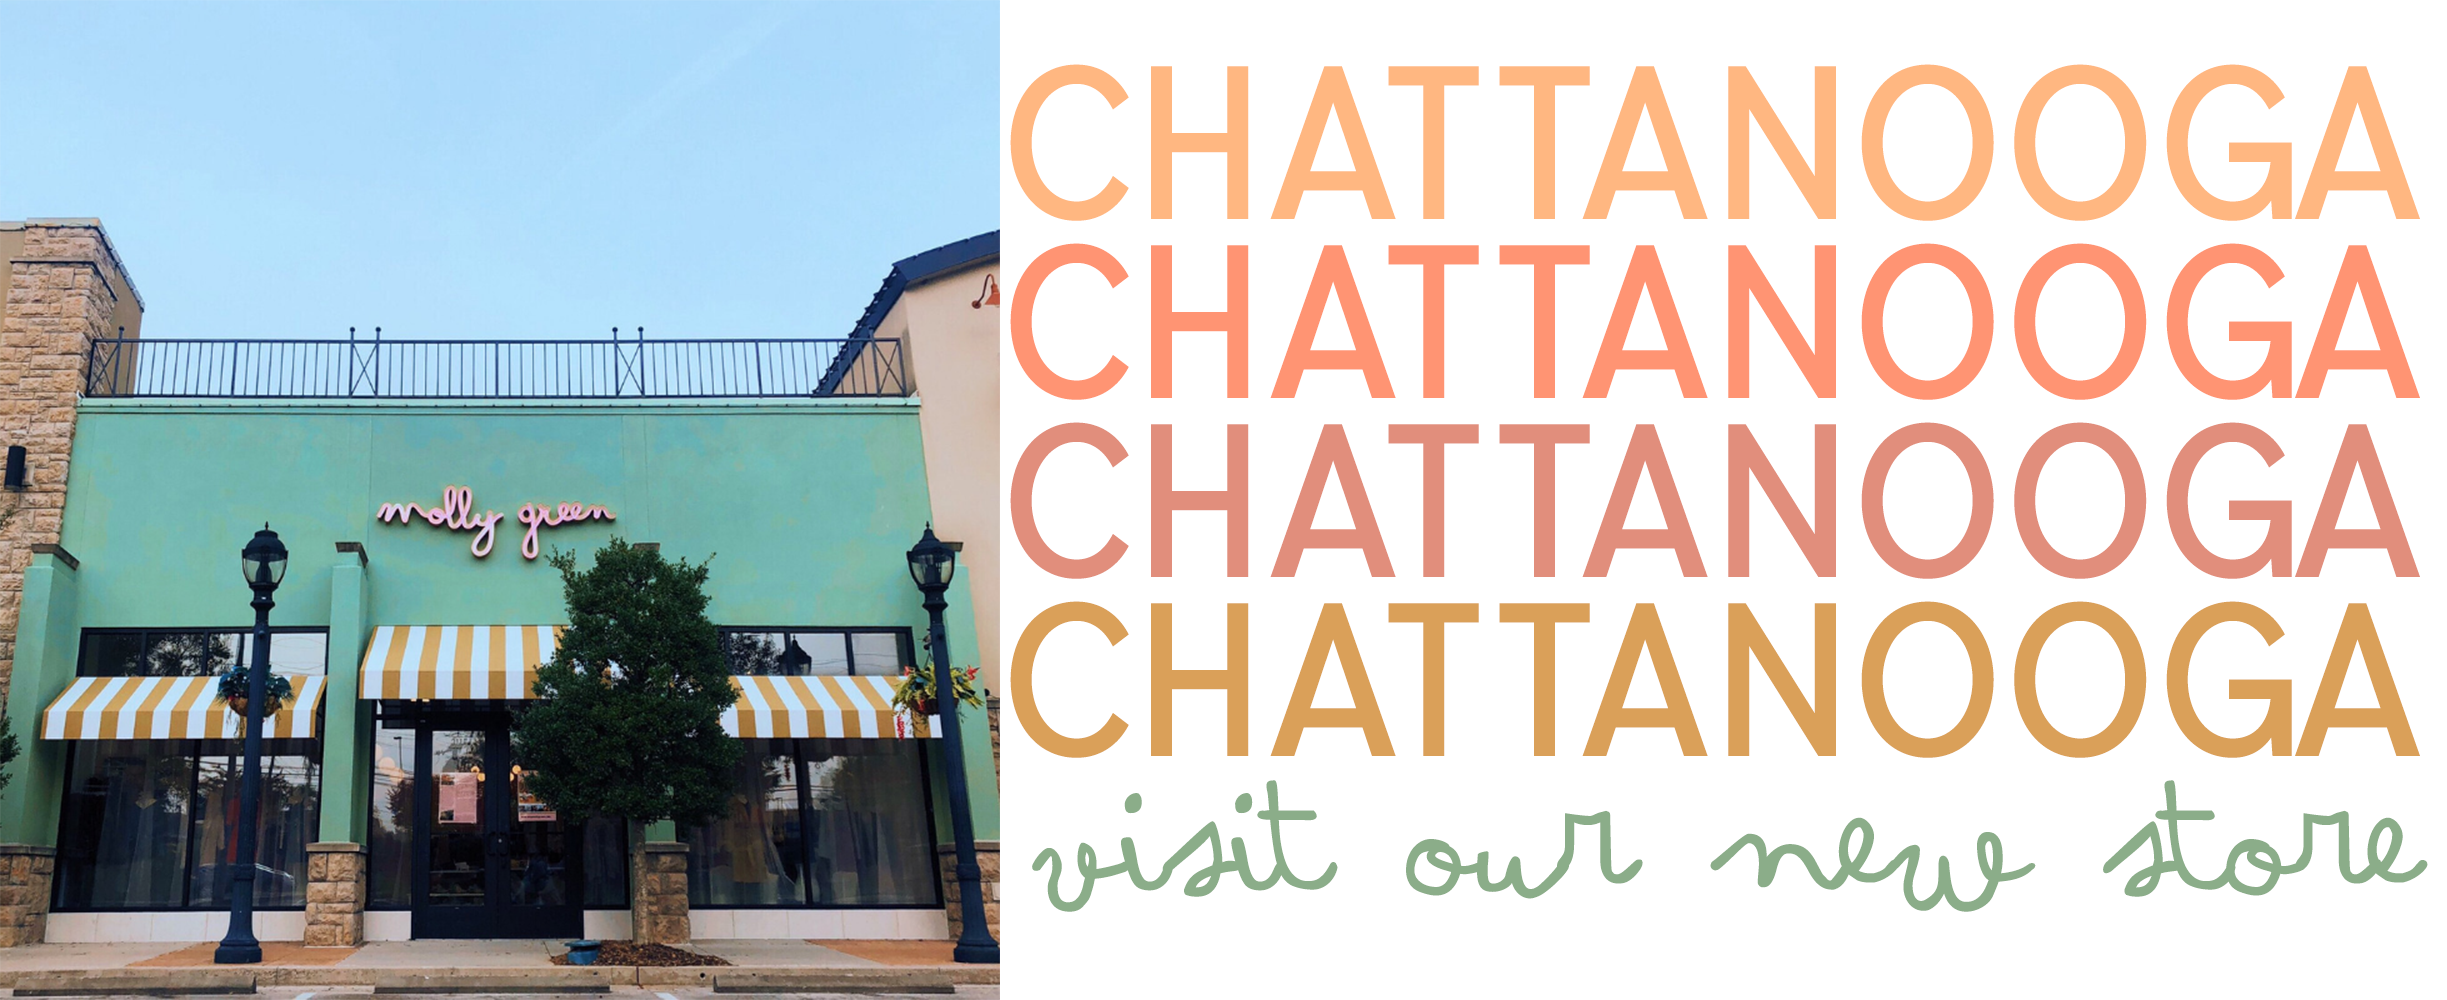 Visit our Chattanooga Store